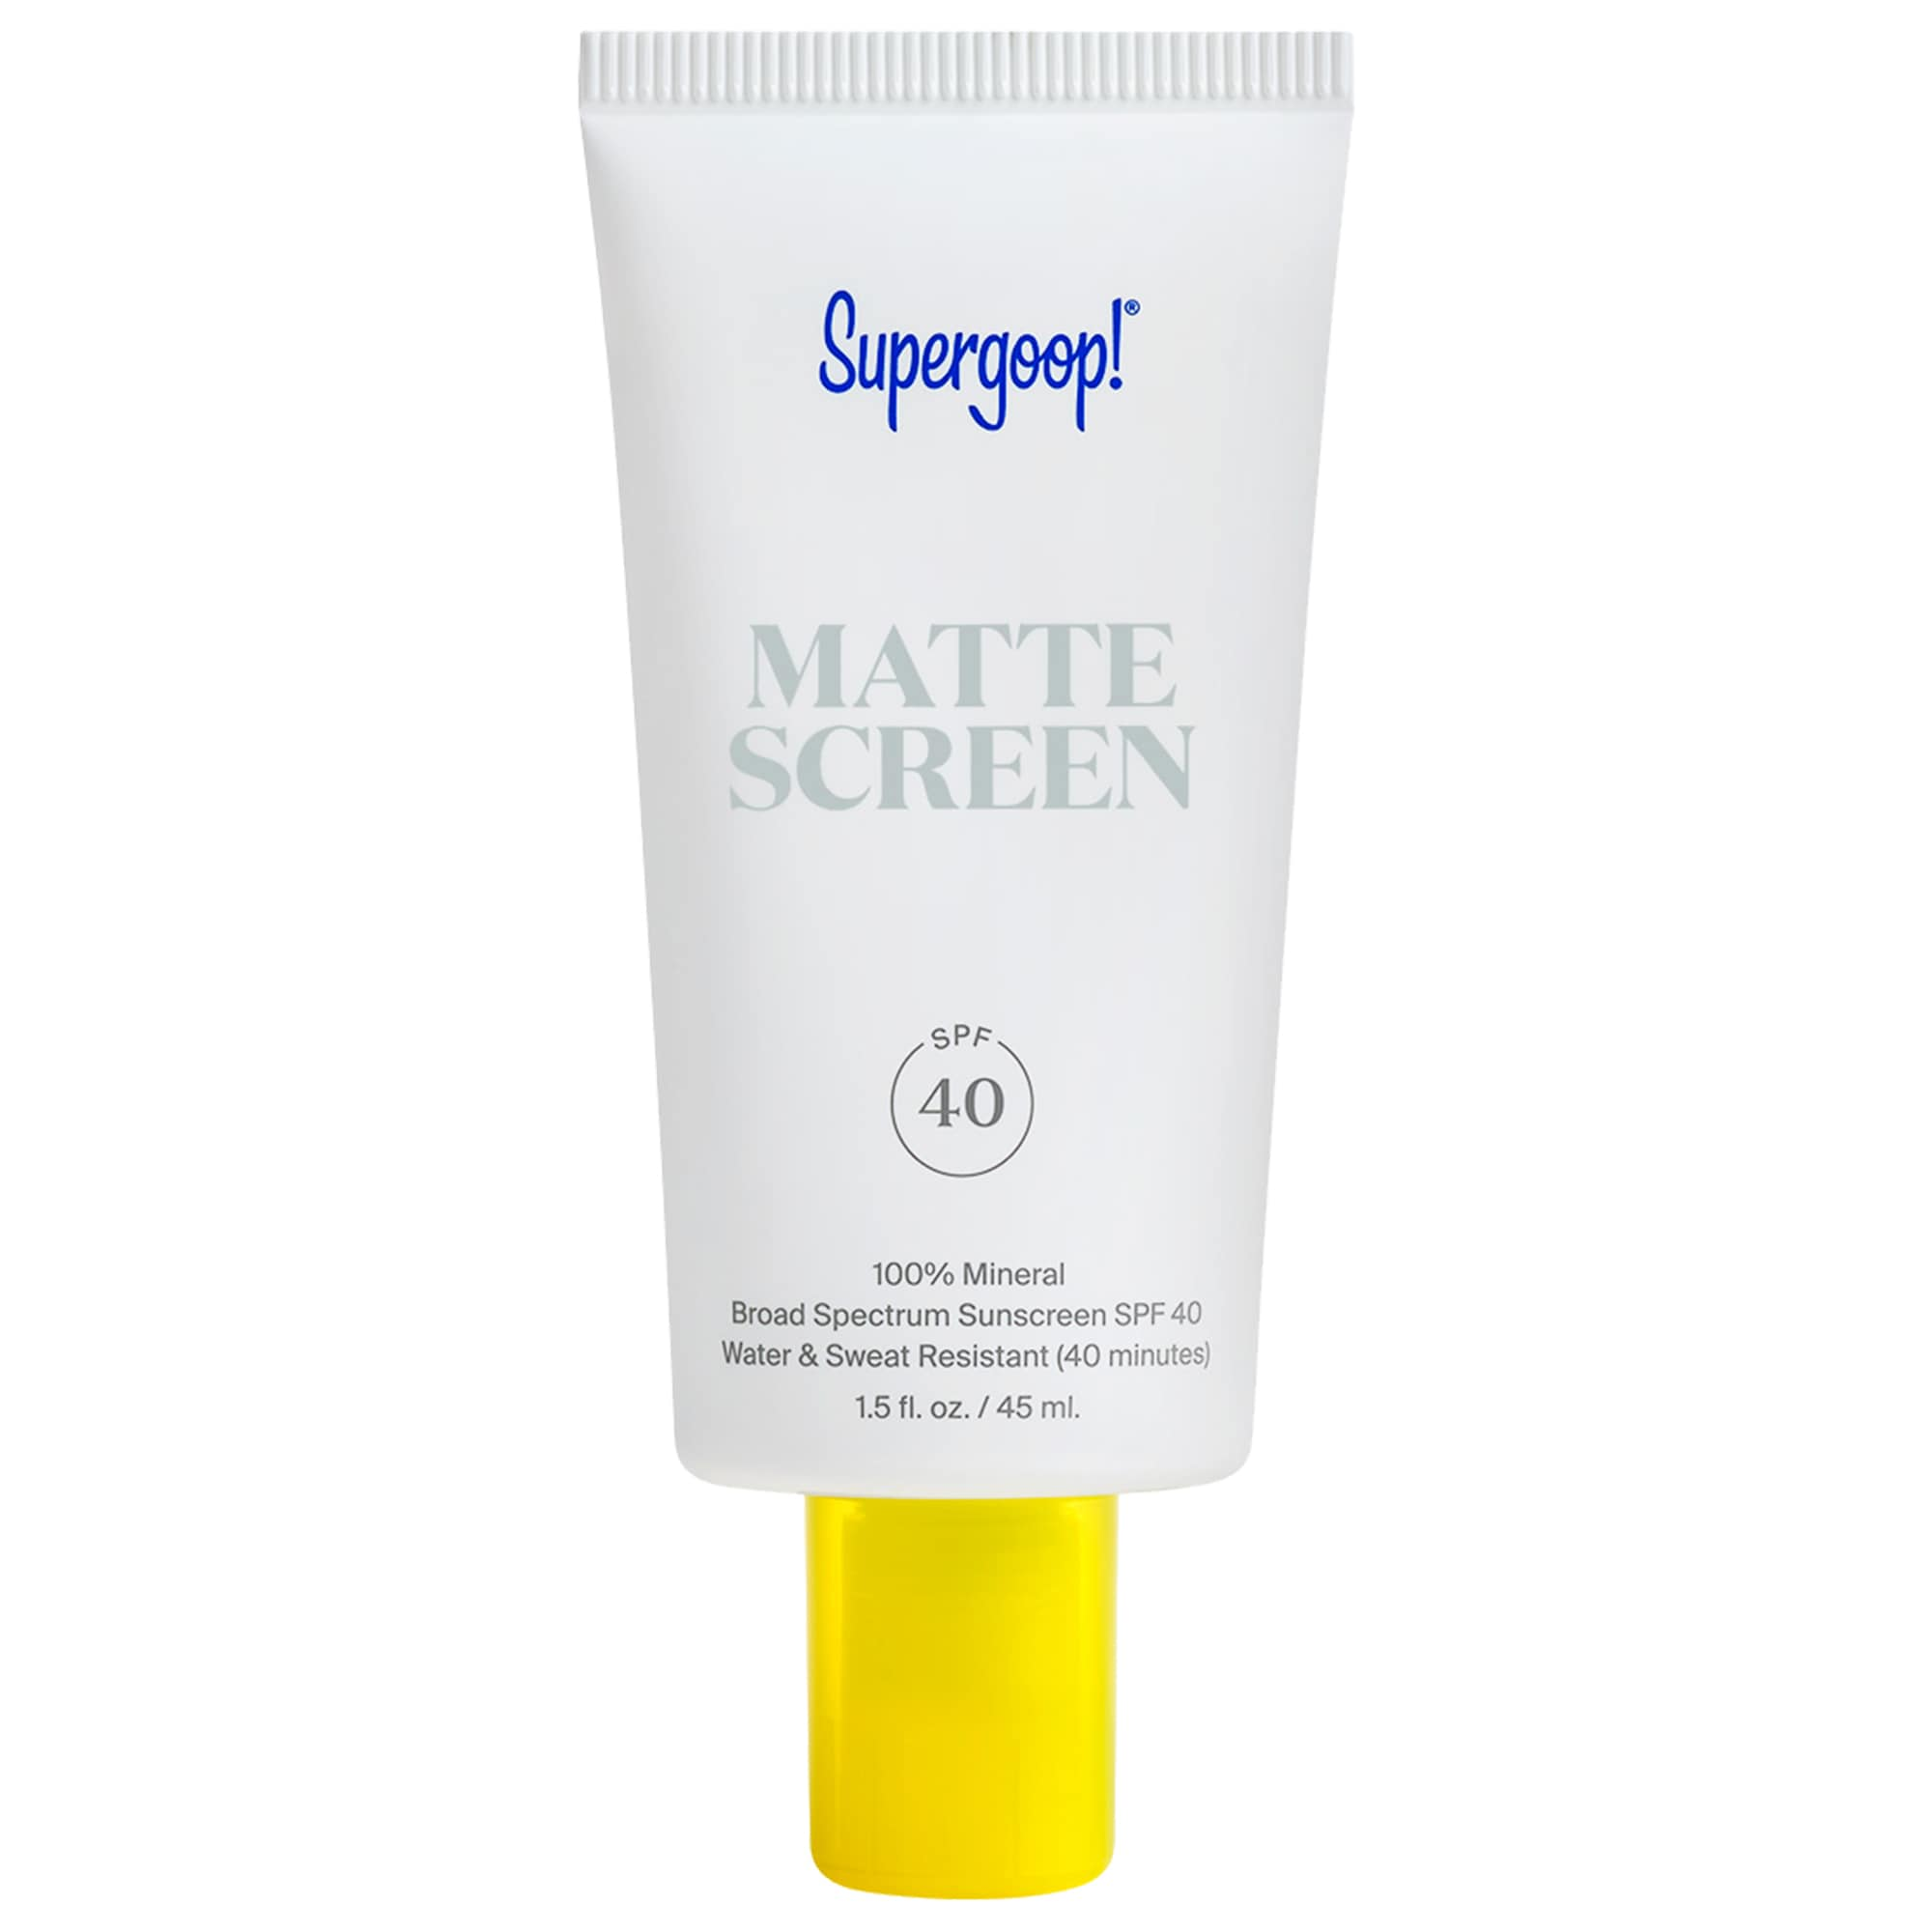 Supergoop! - 100% Mineral Smooth & Poreless Matte Screen SPF 40